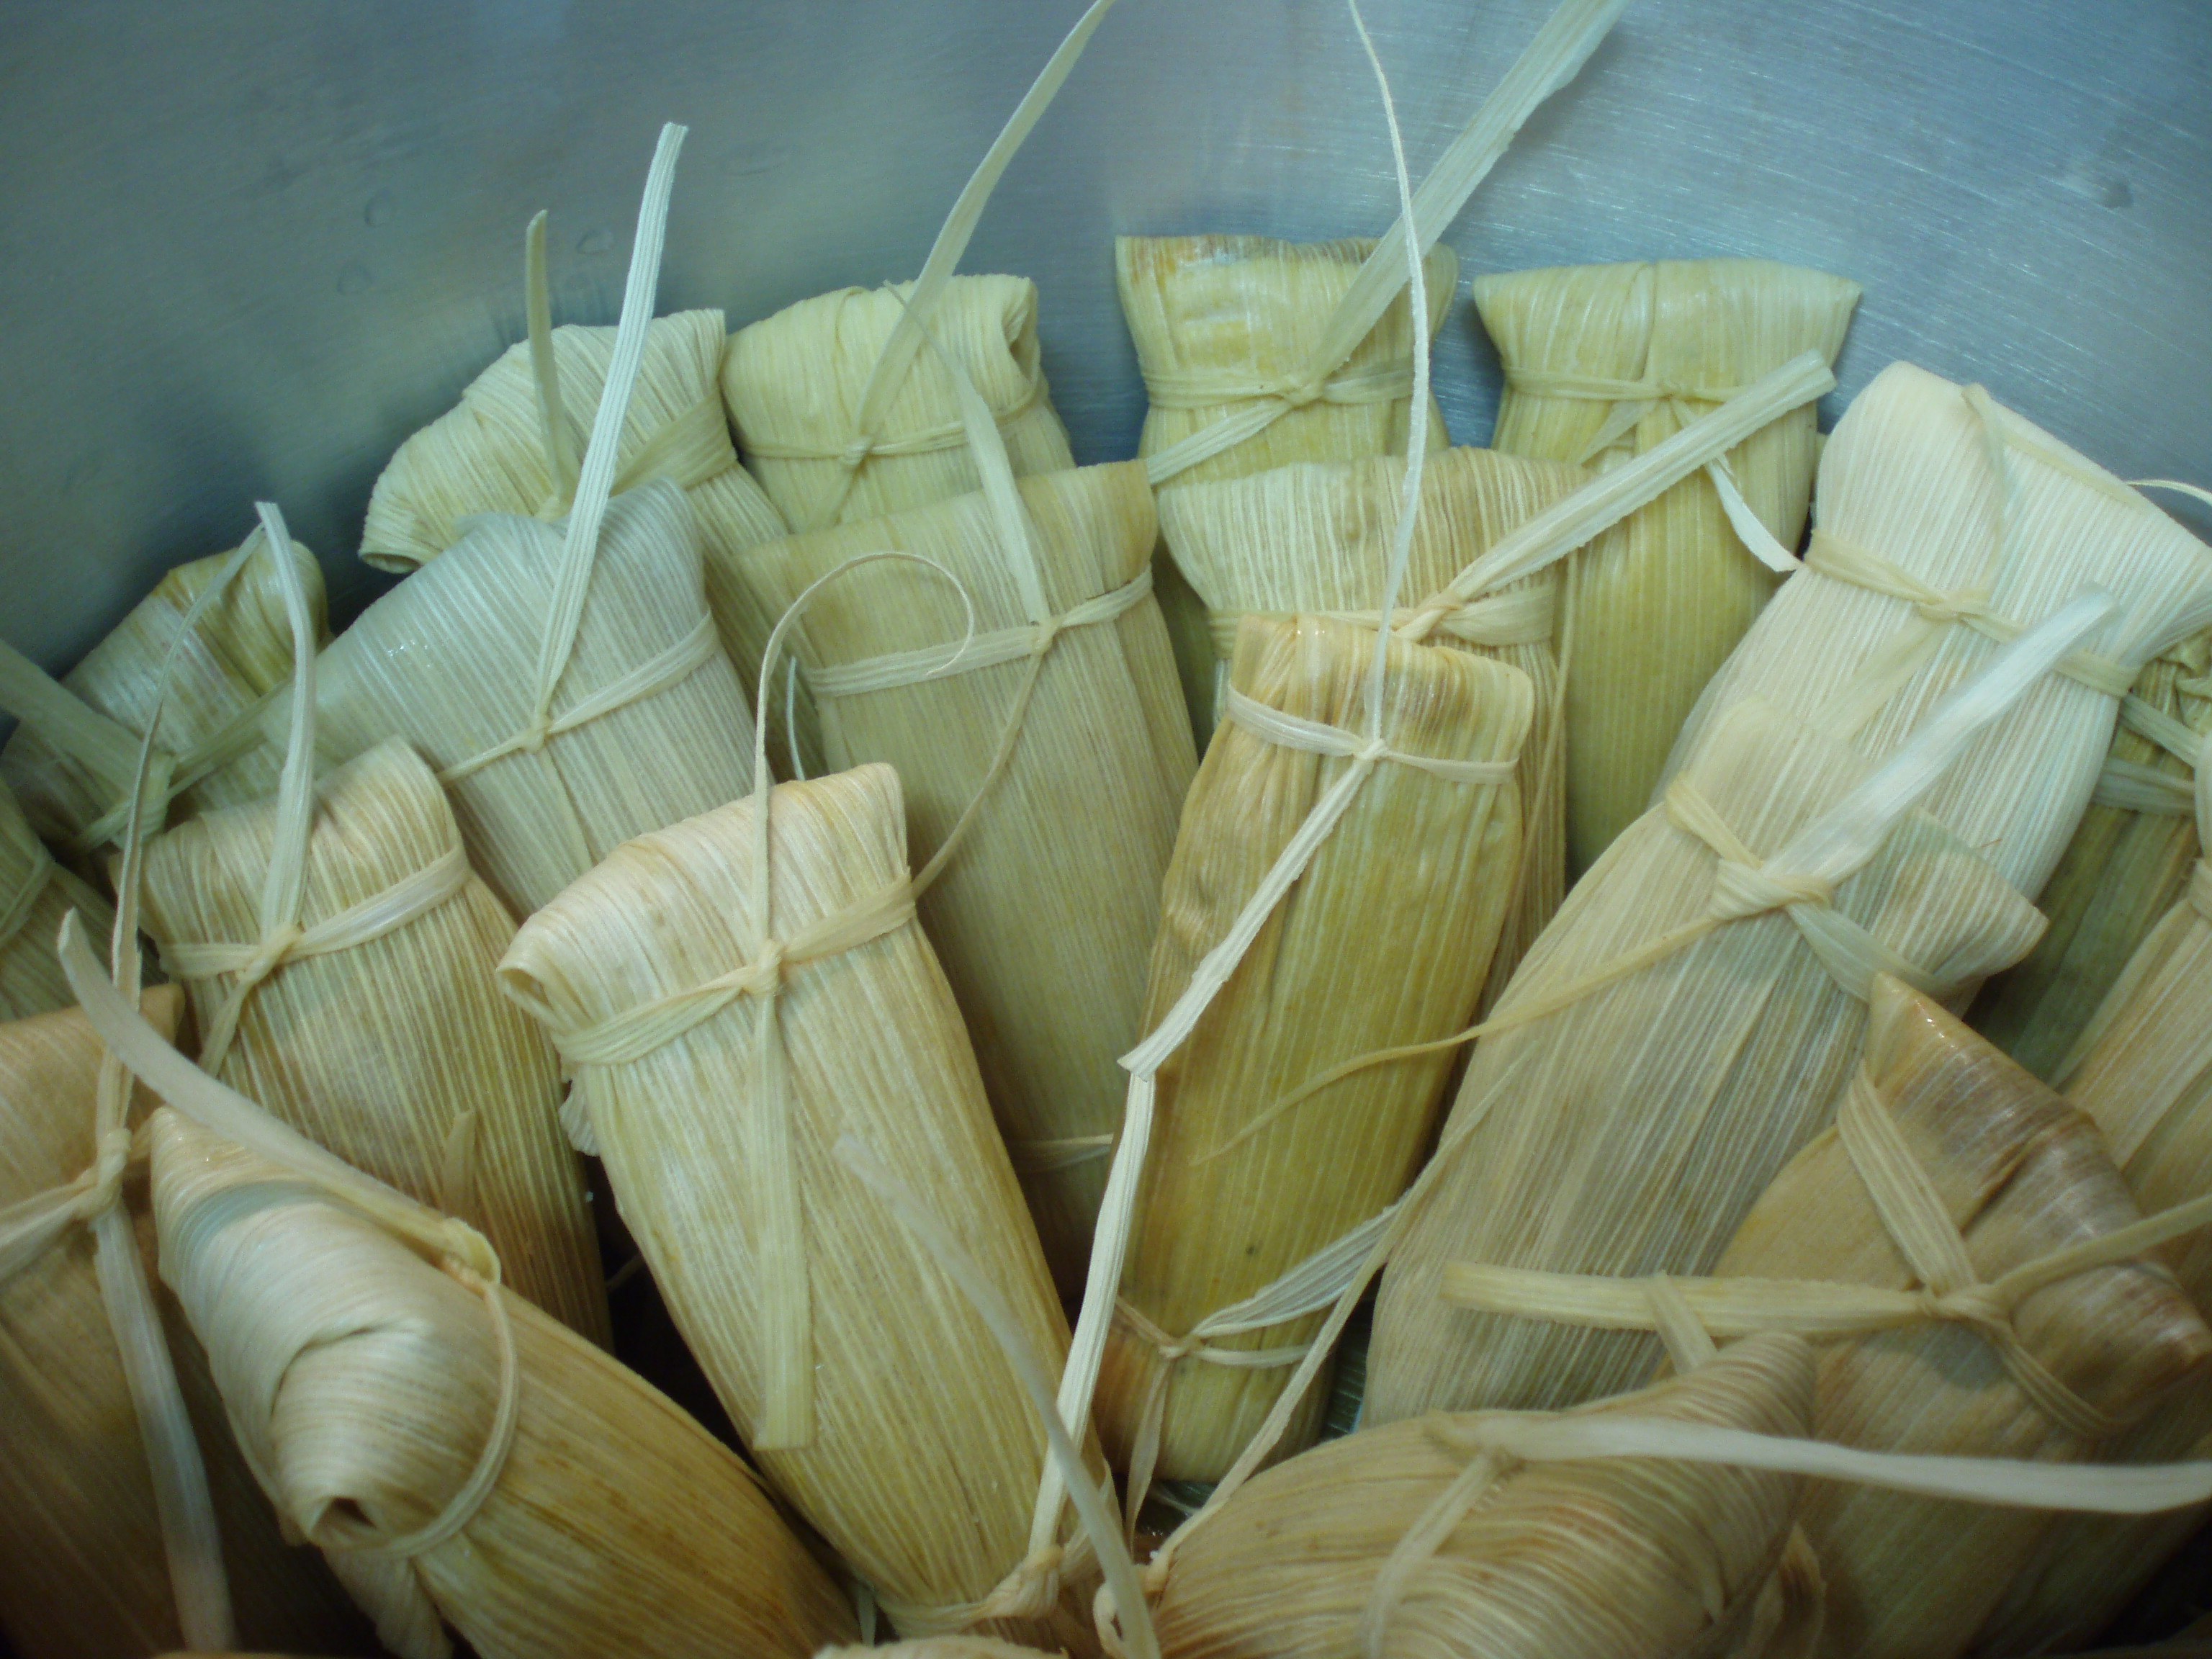 placing tamales in the steamer